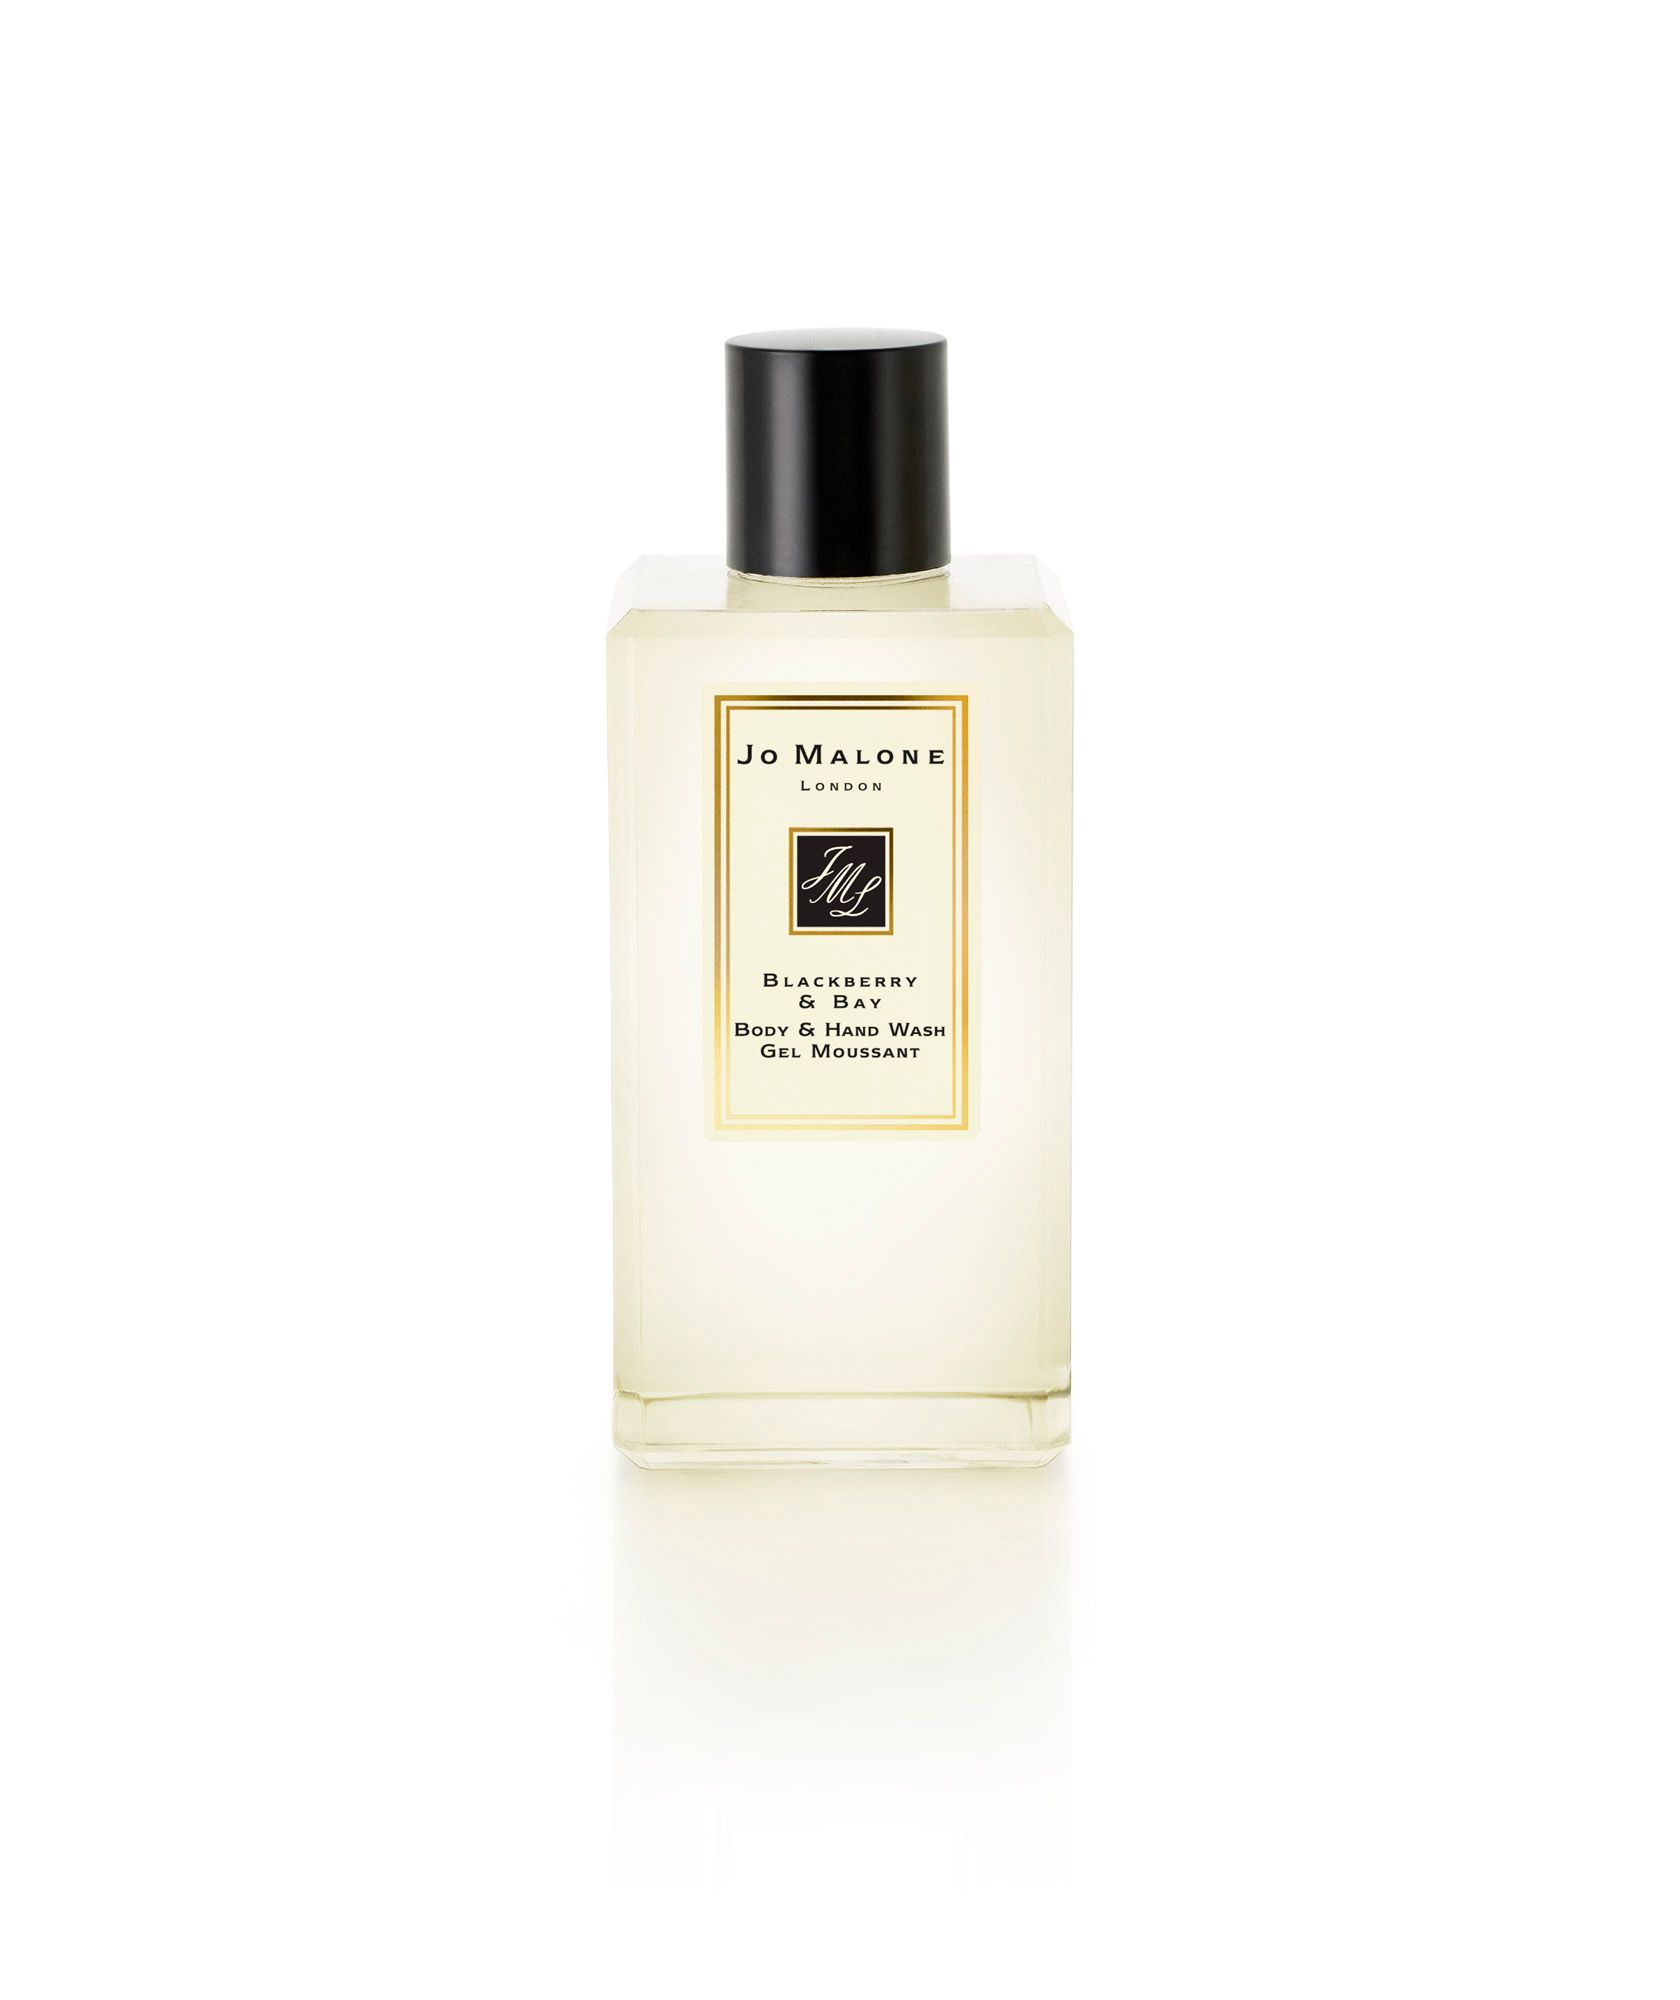 Blackberry & Bay Body & Hand Wash